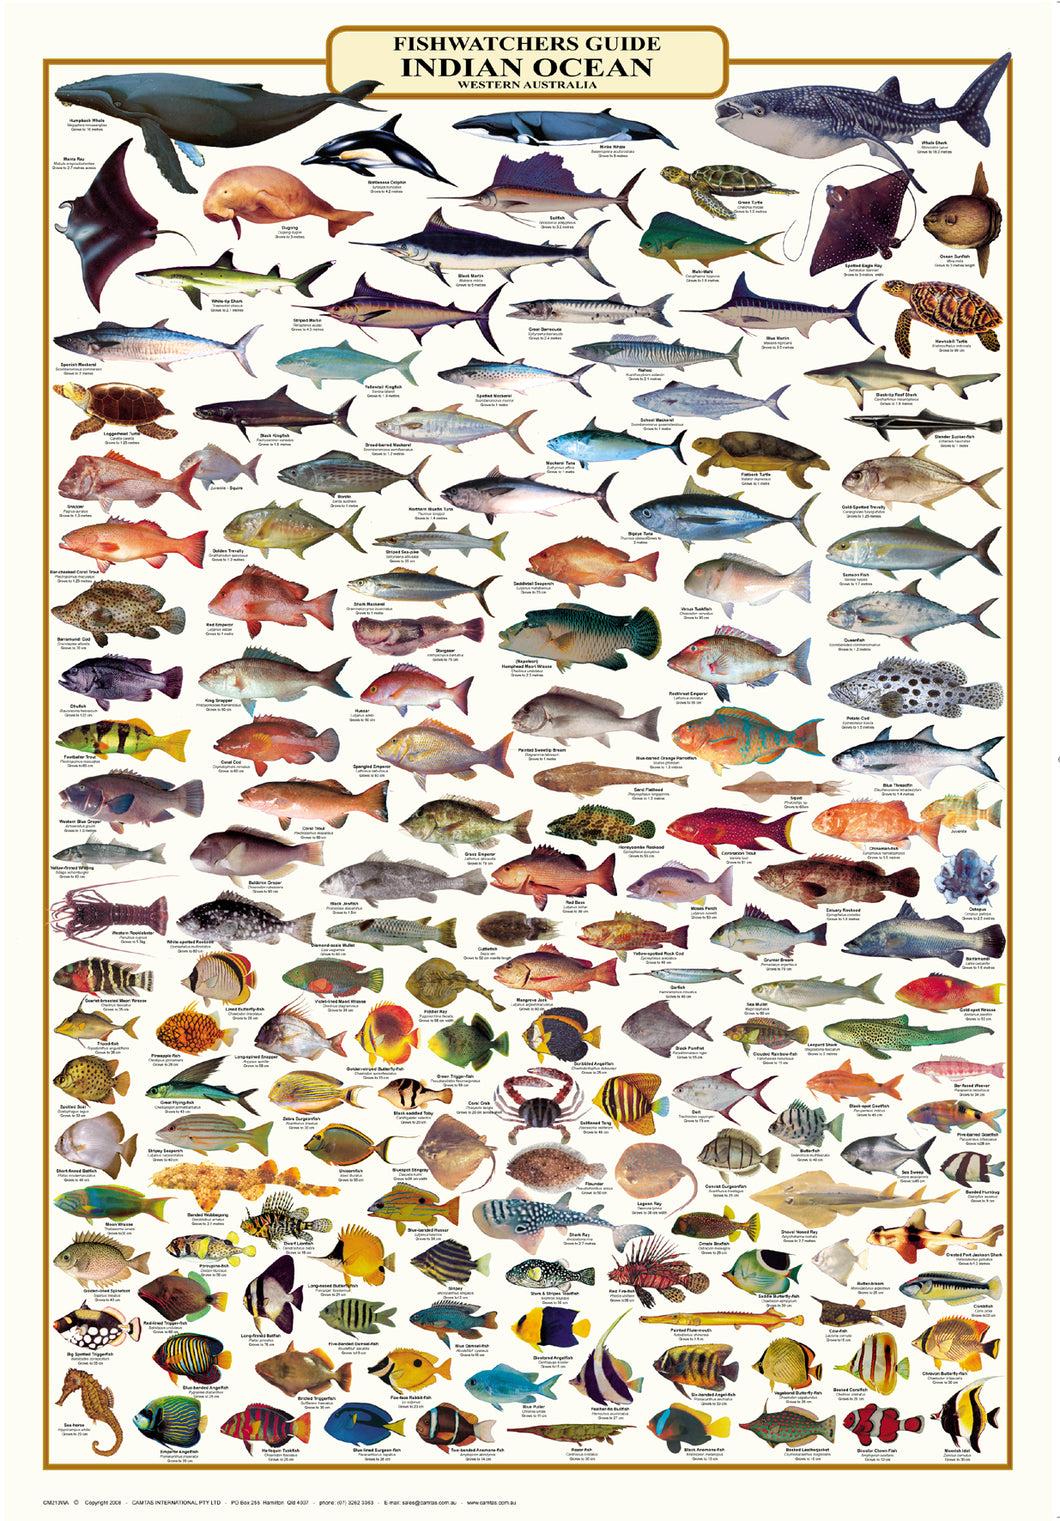 Fish Identification - Western Australia Fishwatchers Guide - Camtas Wall Chart / WCAF134